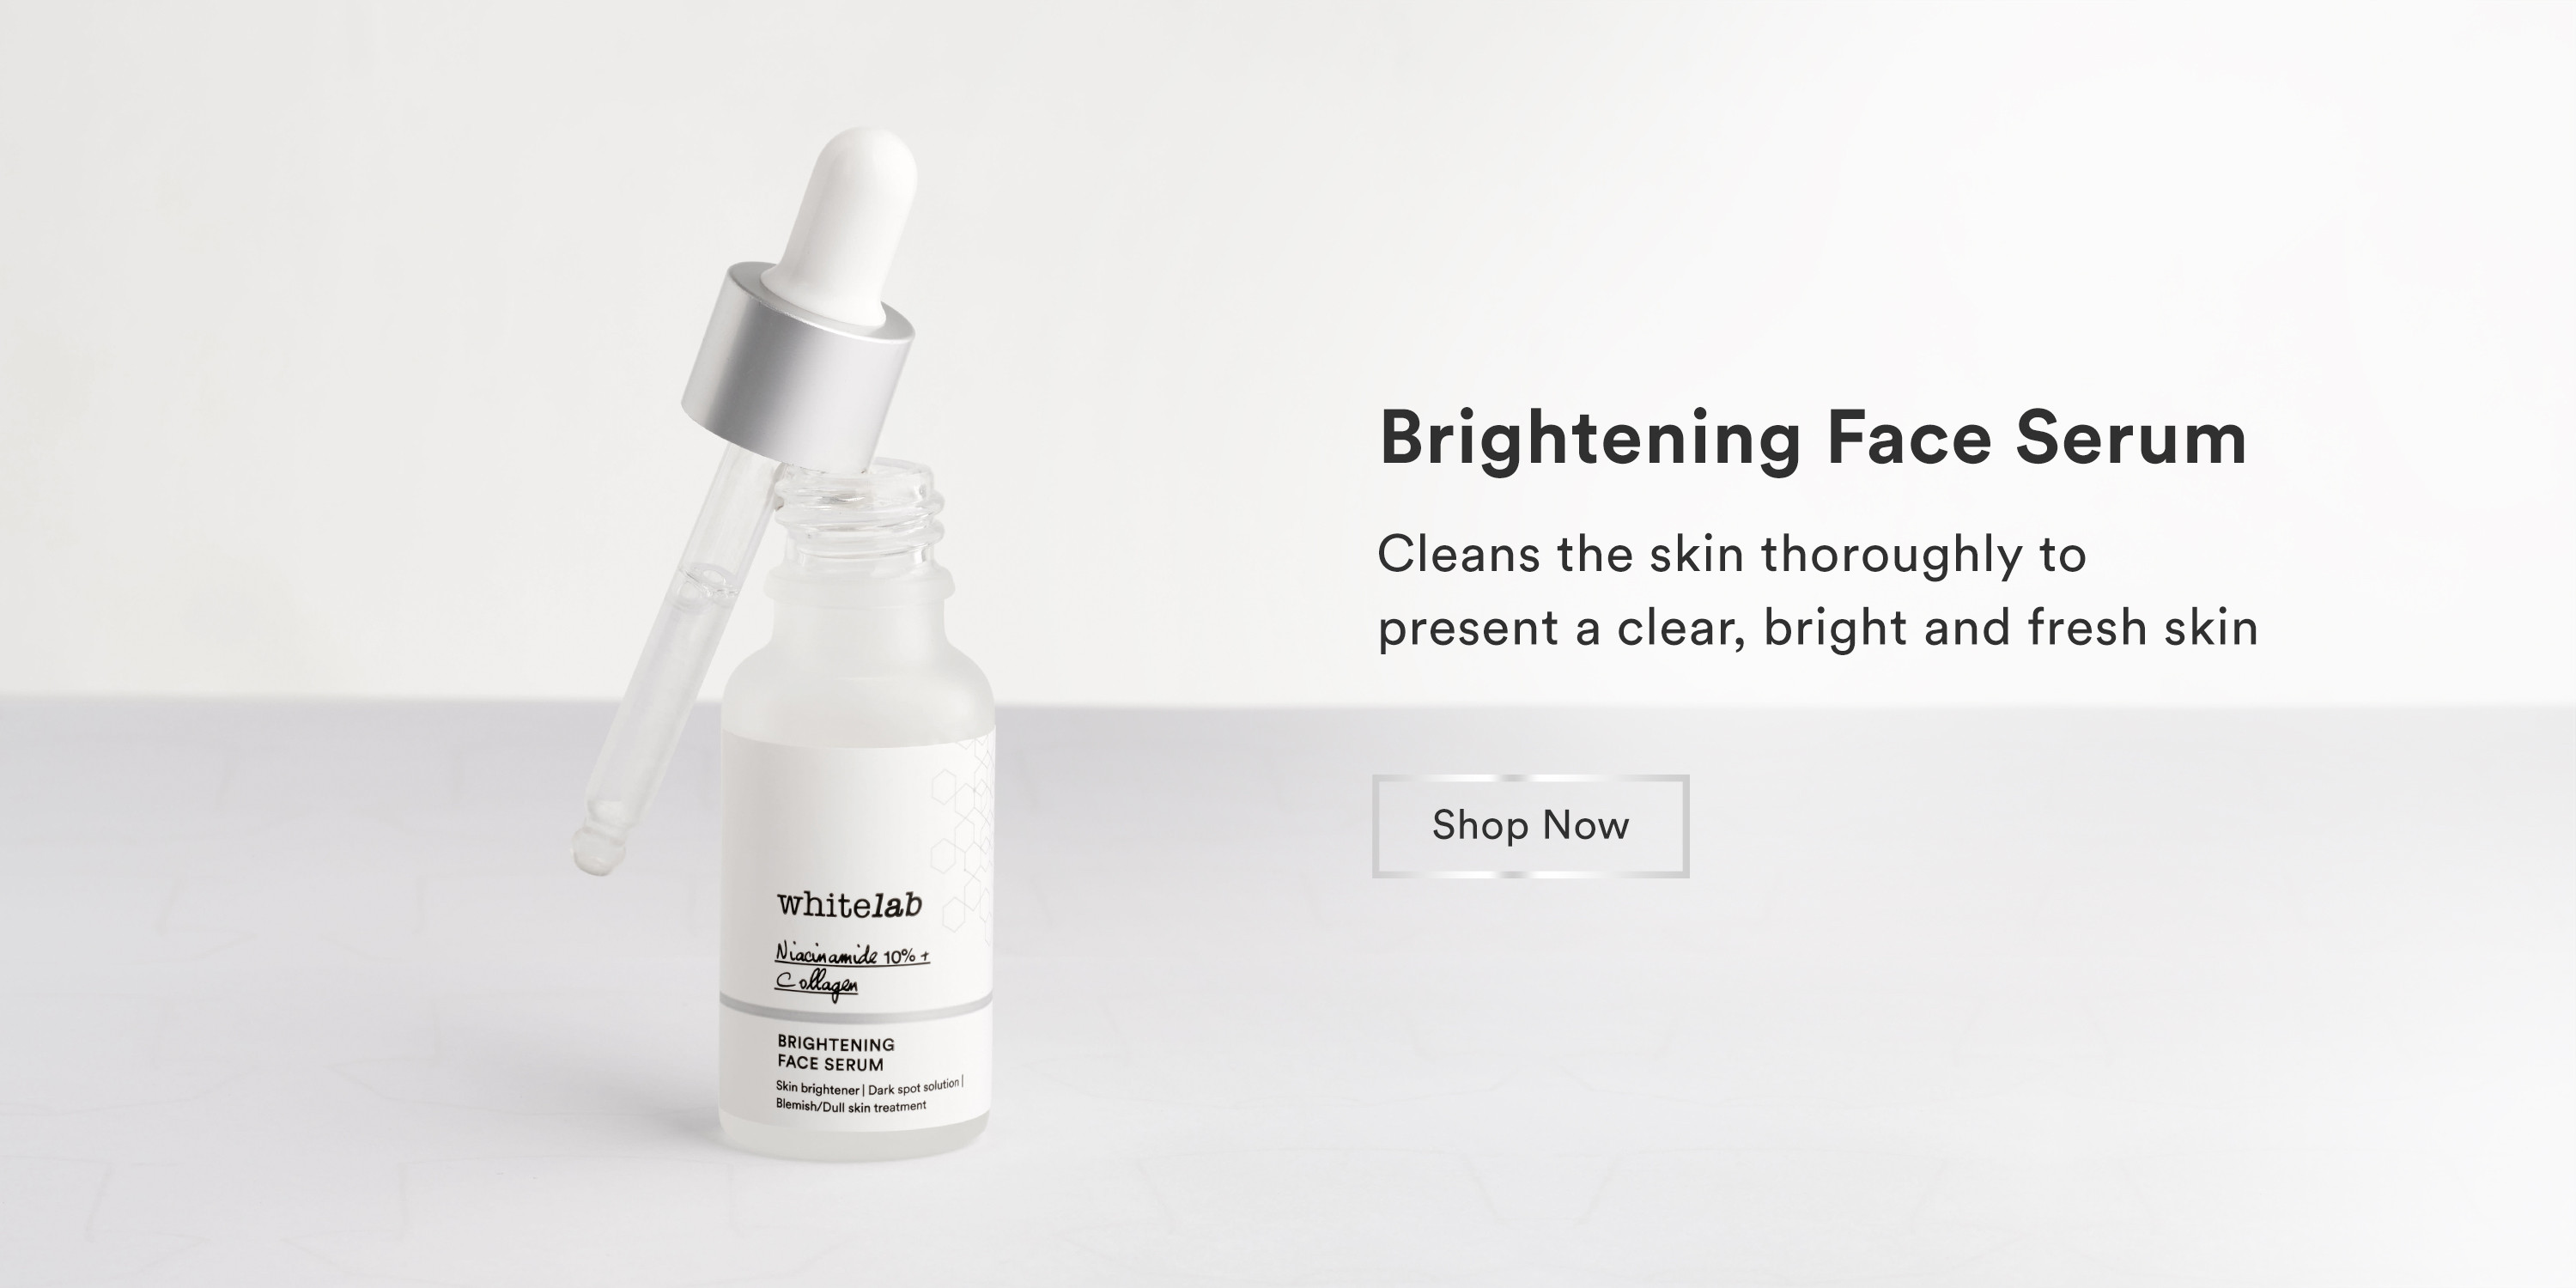 Brightening Face Serum